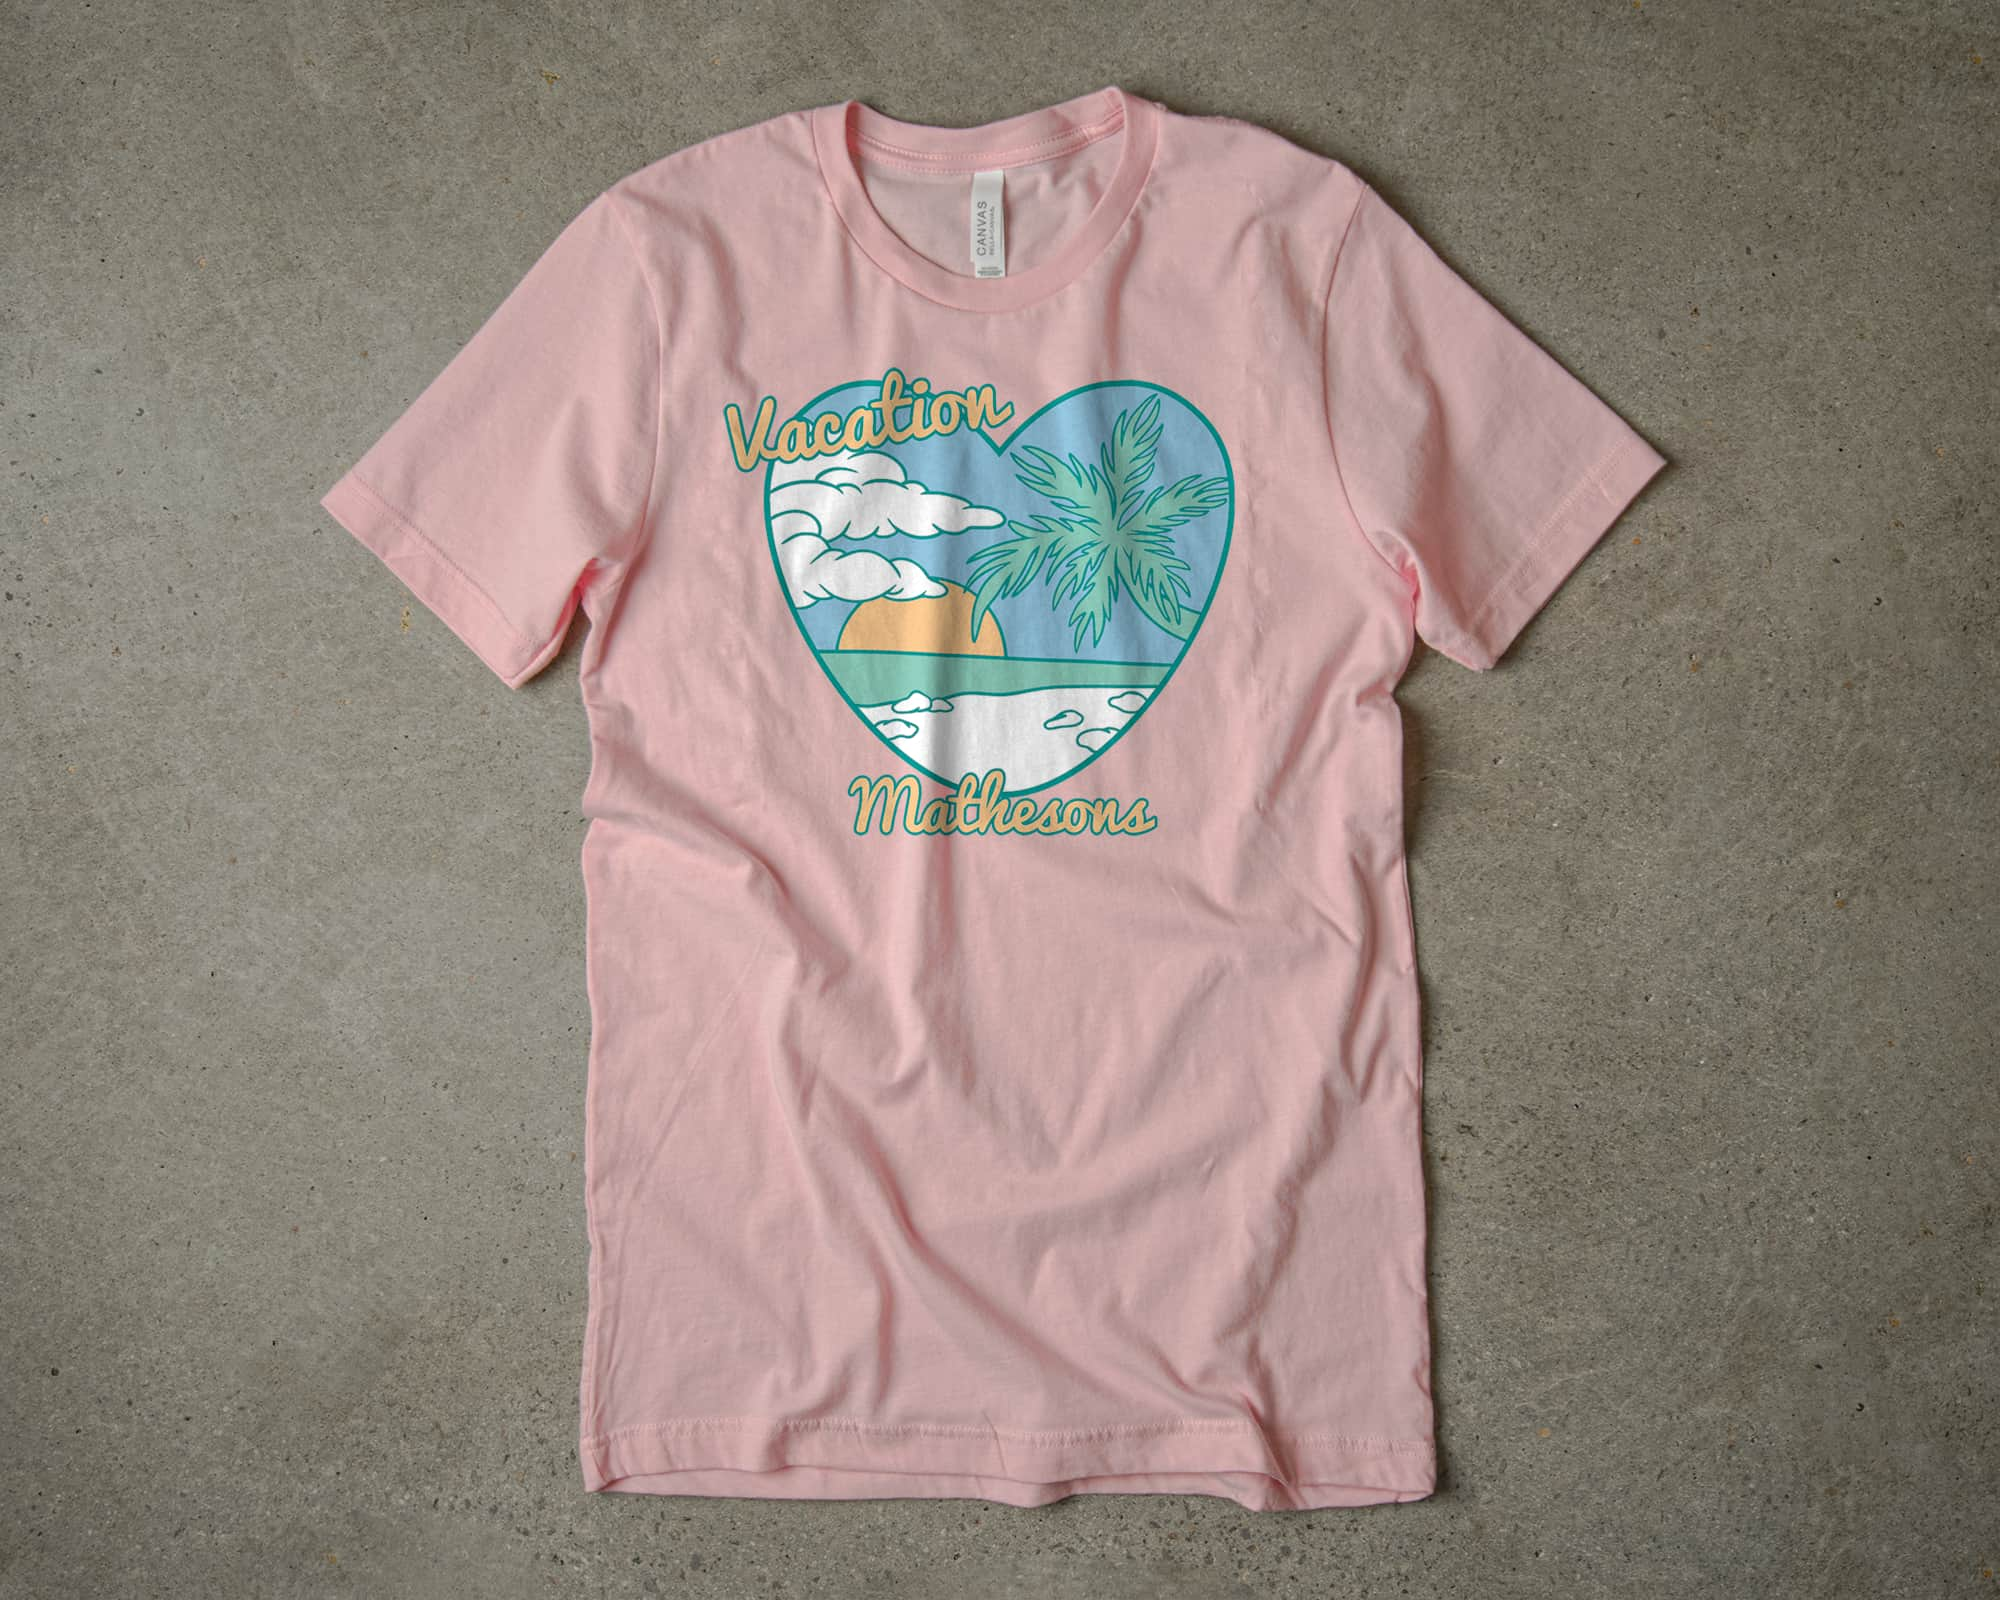 A vacation themed t-shirt design made using our pretty pastel color pallet.